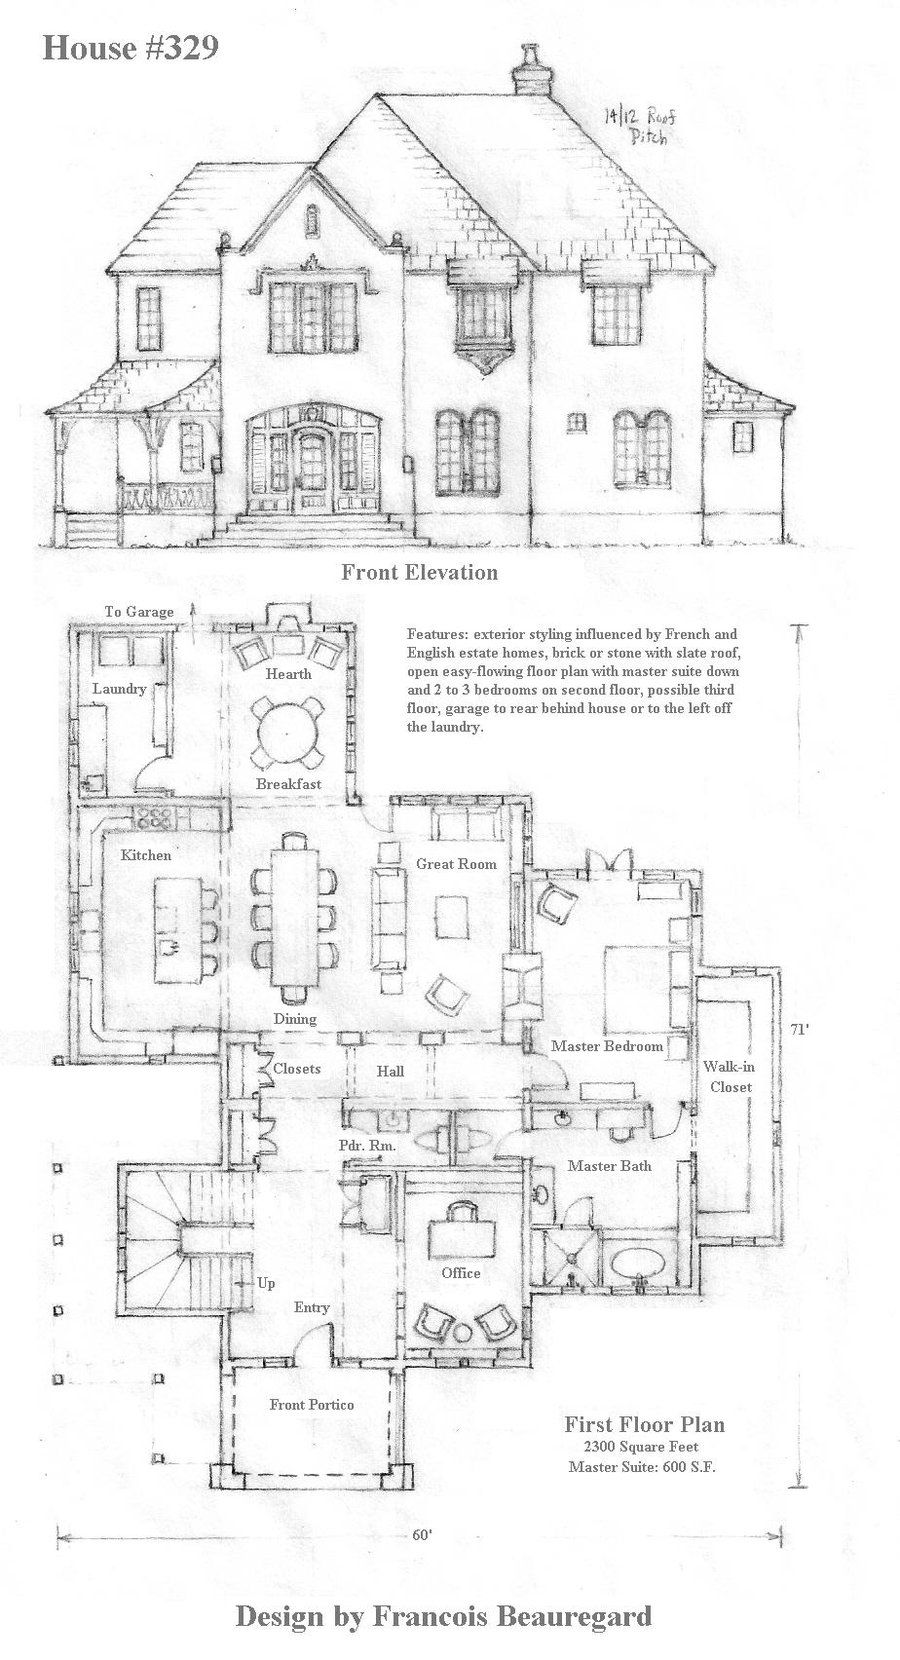 Vintage Architectural Blueprints House 329 Plan By Built4ever Deviantart Draft In 2019